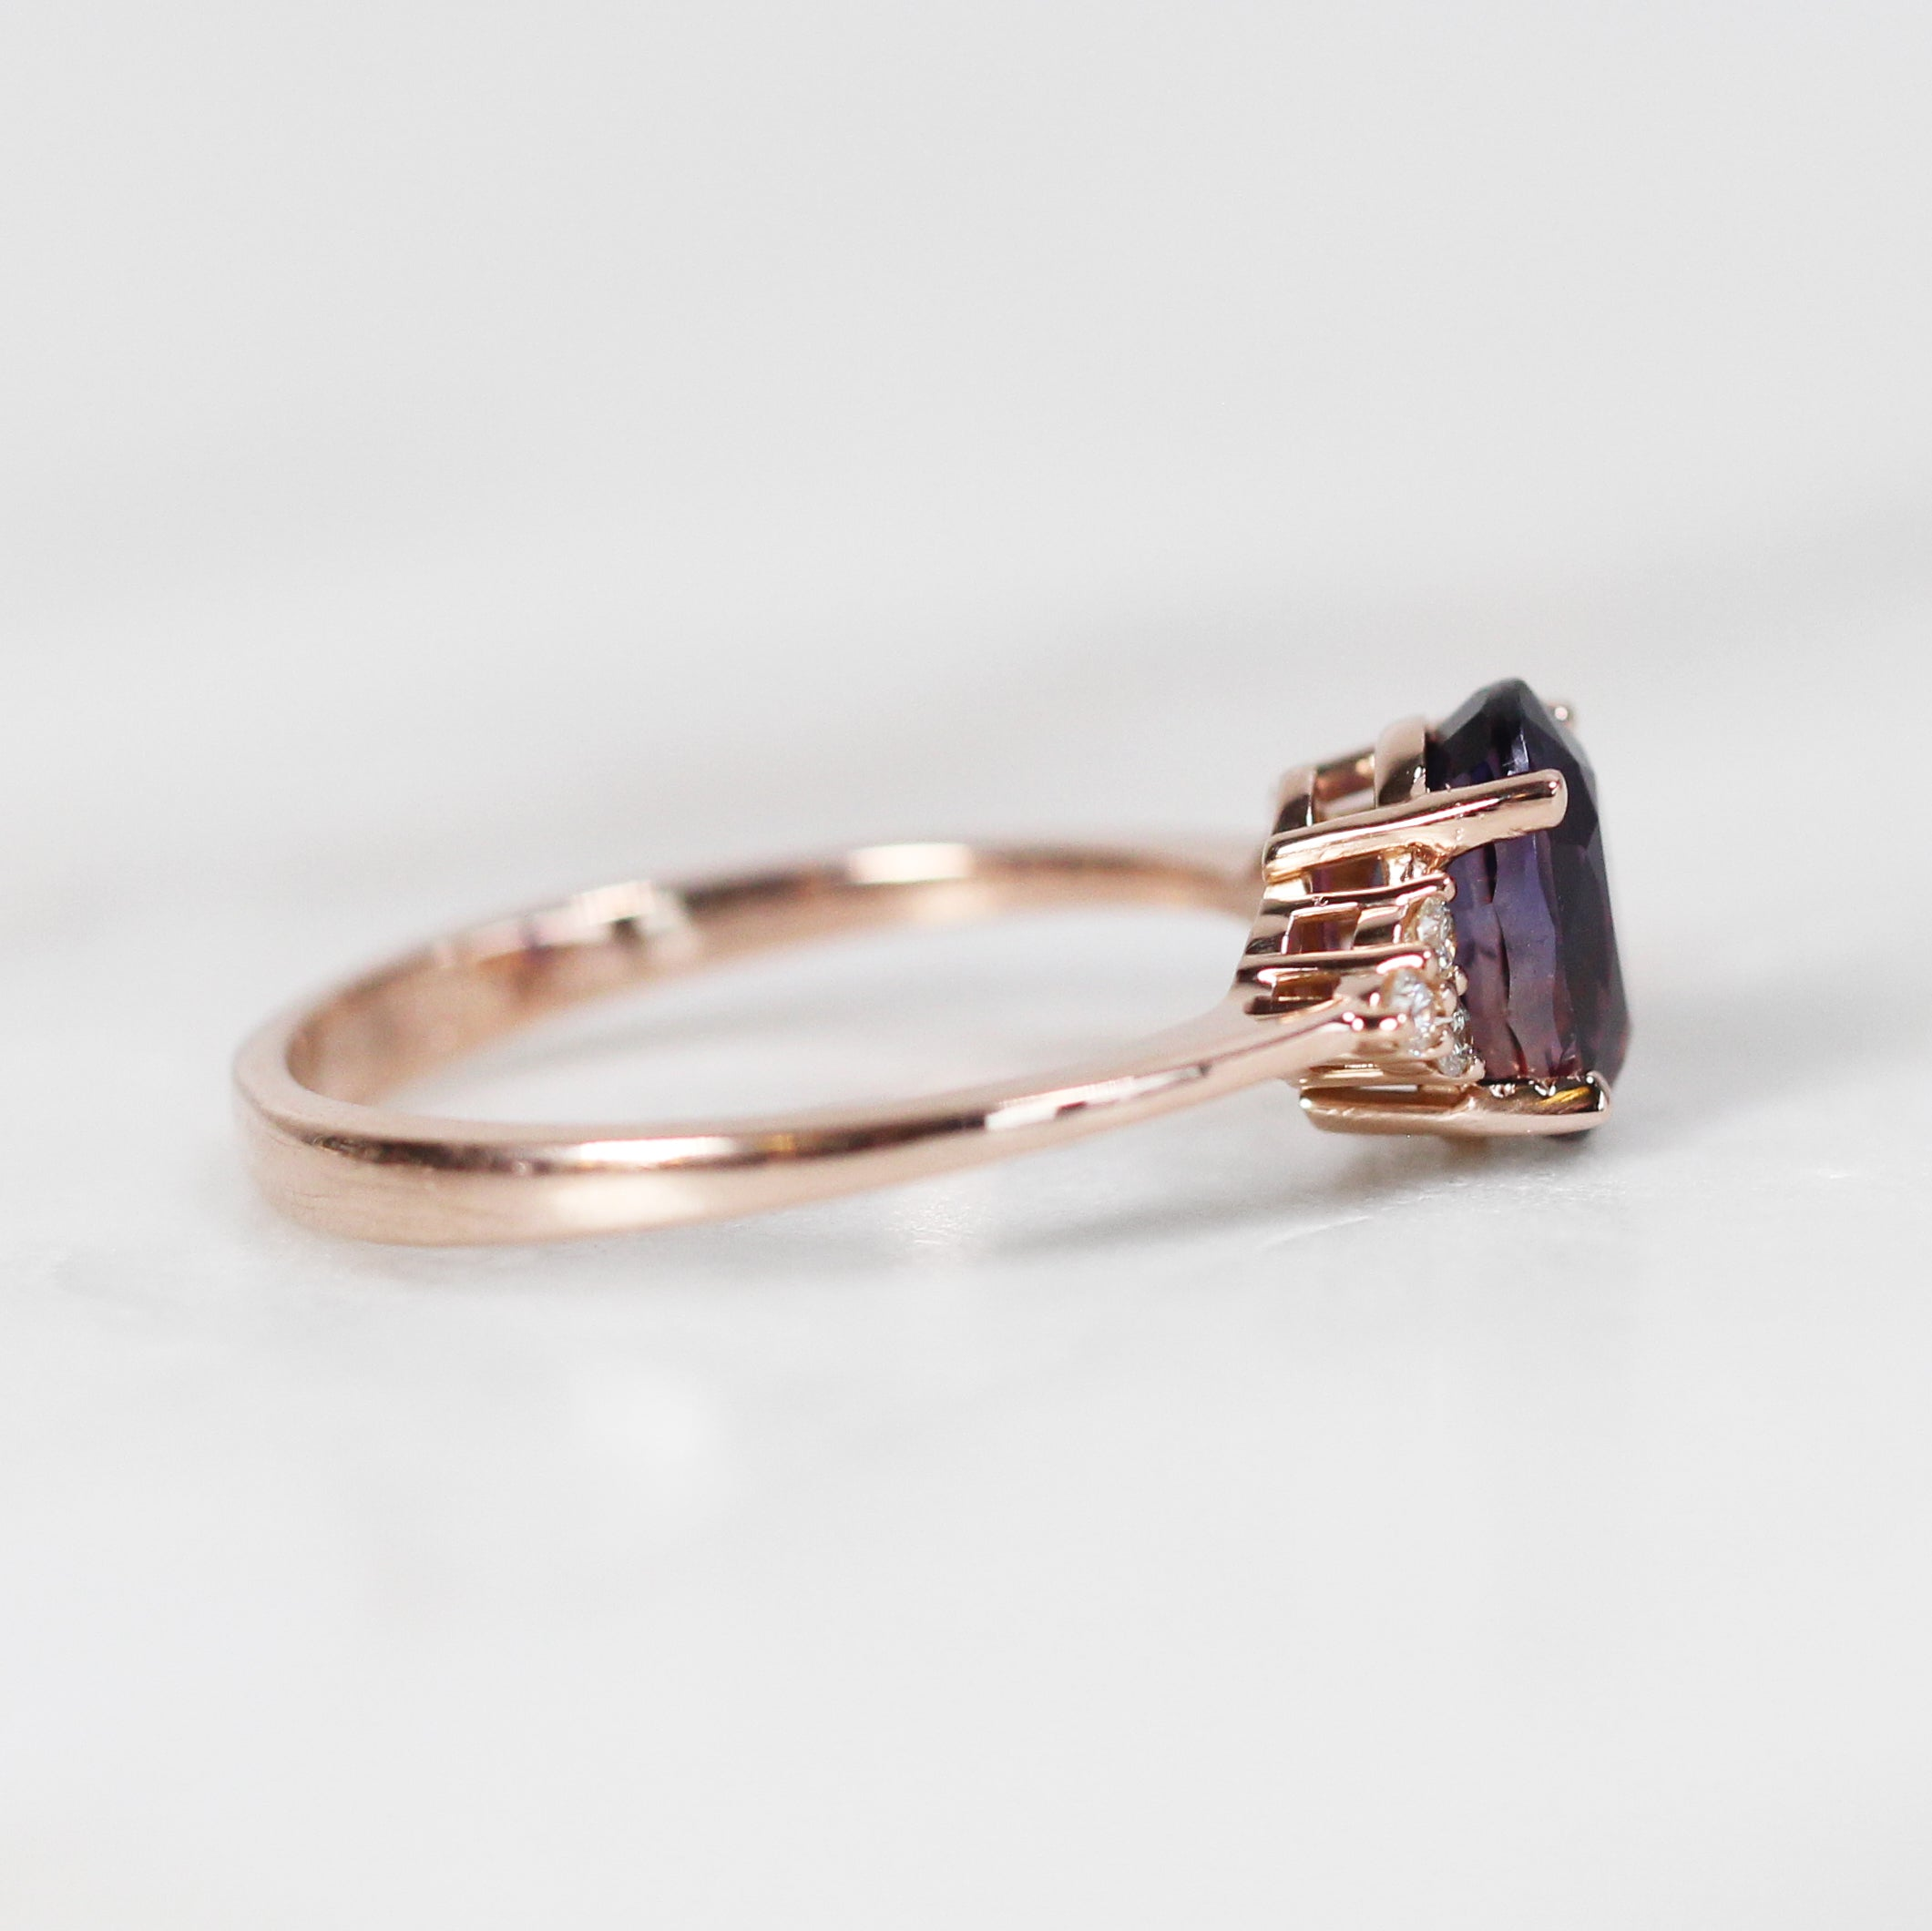 Imogene Ring with 2.10 Carat Oval Purple Sapphire in 10k Rose Gold - Ready to Size and Ship - Celestial Diamonds ® by Midwinter Co.